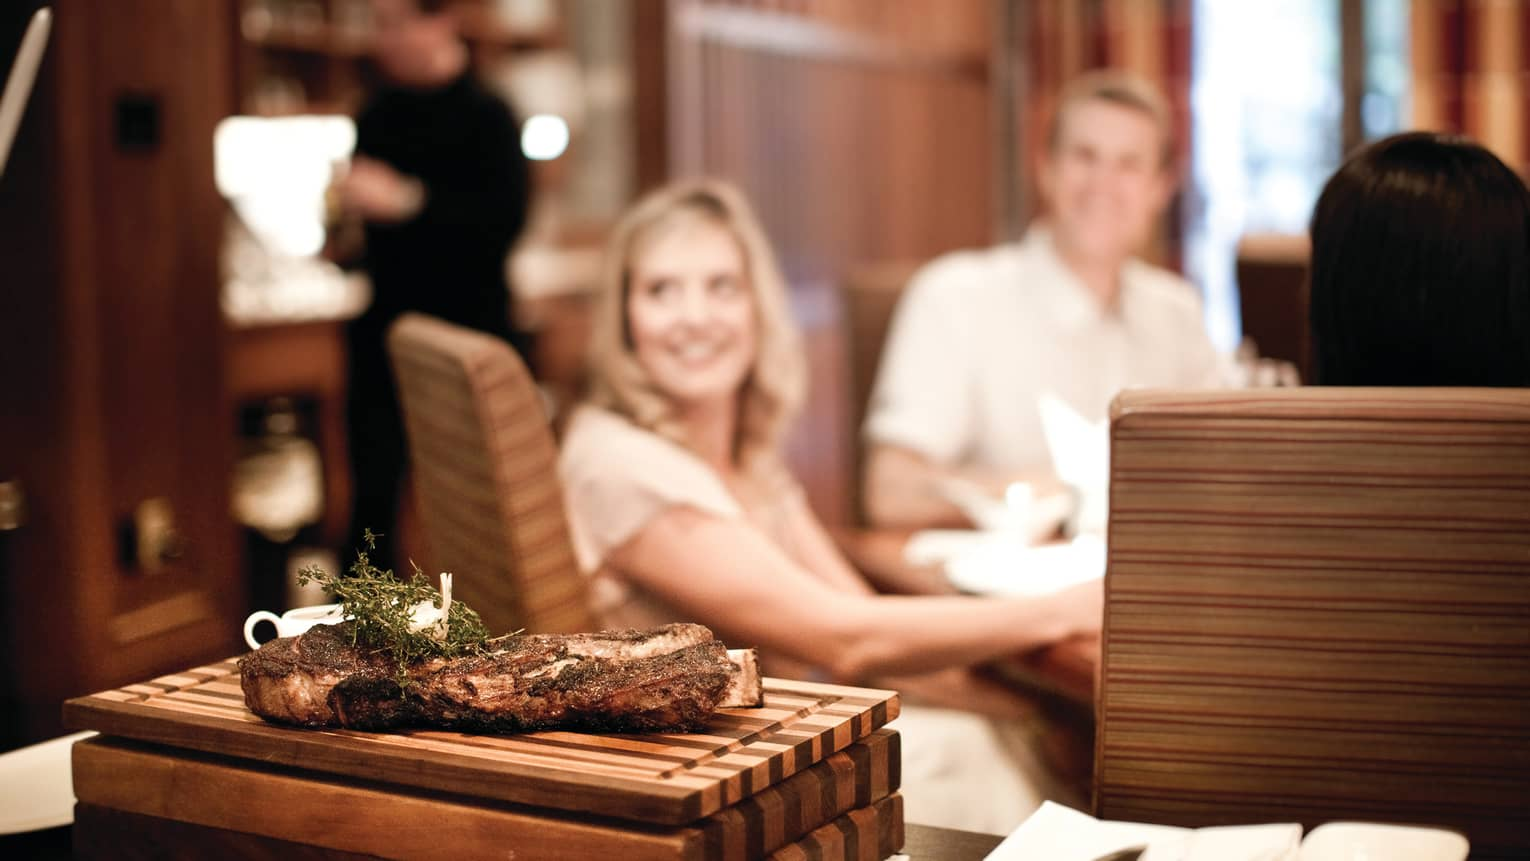 Steak with herb seasoning on wood butcher board, woman and man smiling in background